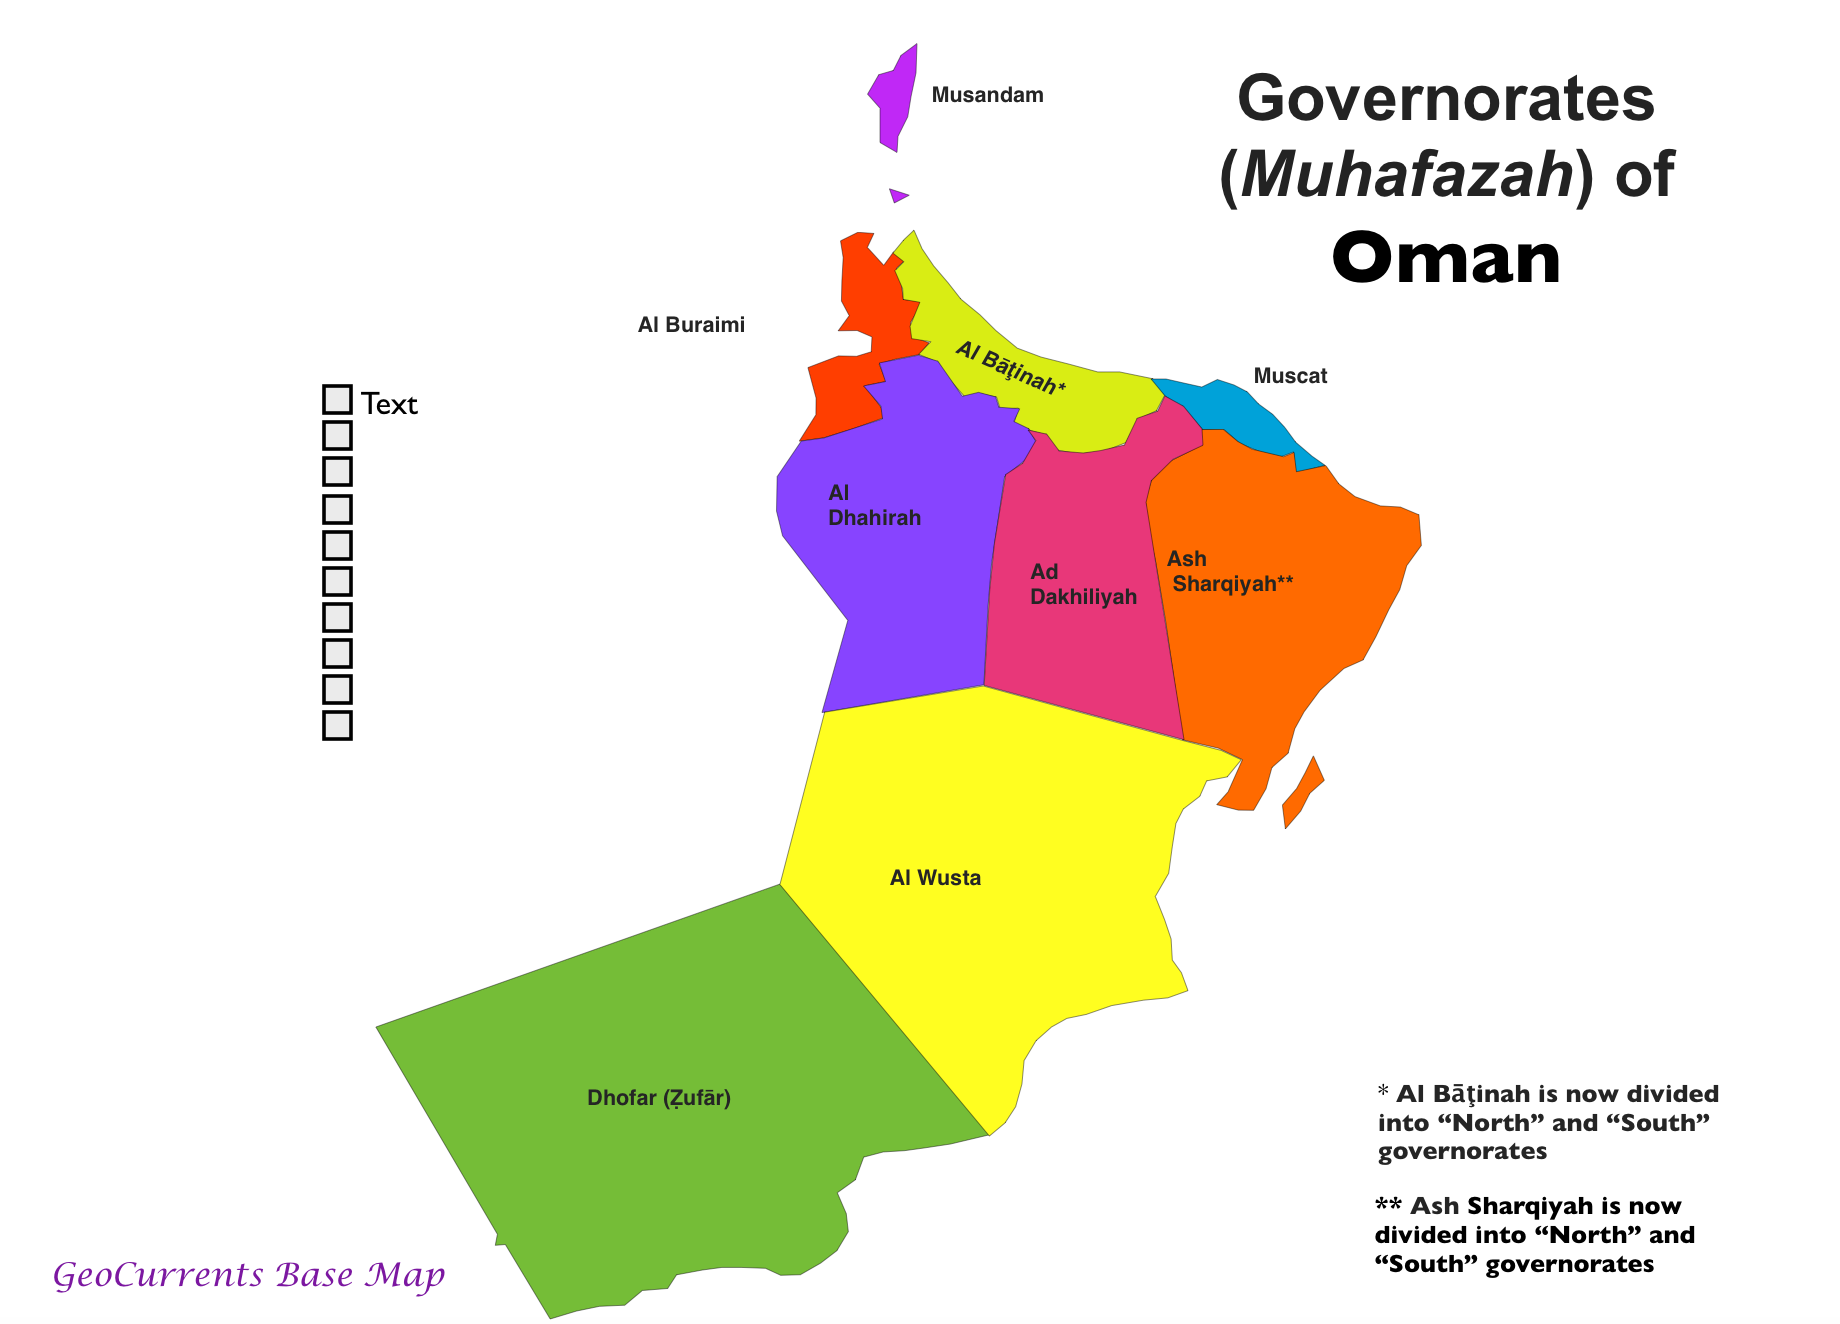 as in governorates of oman